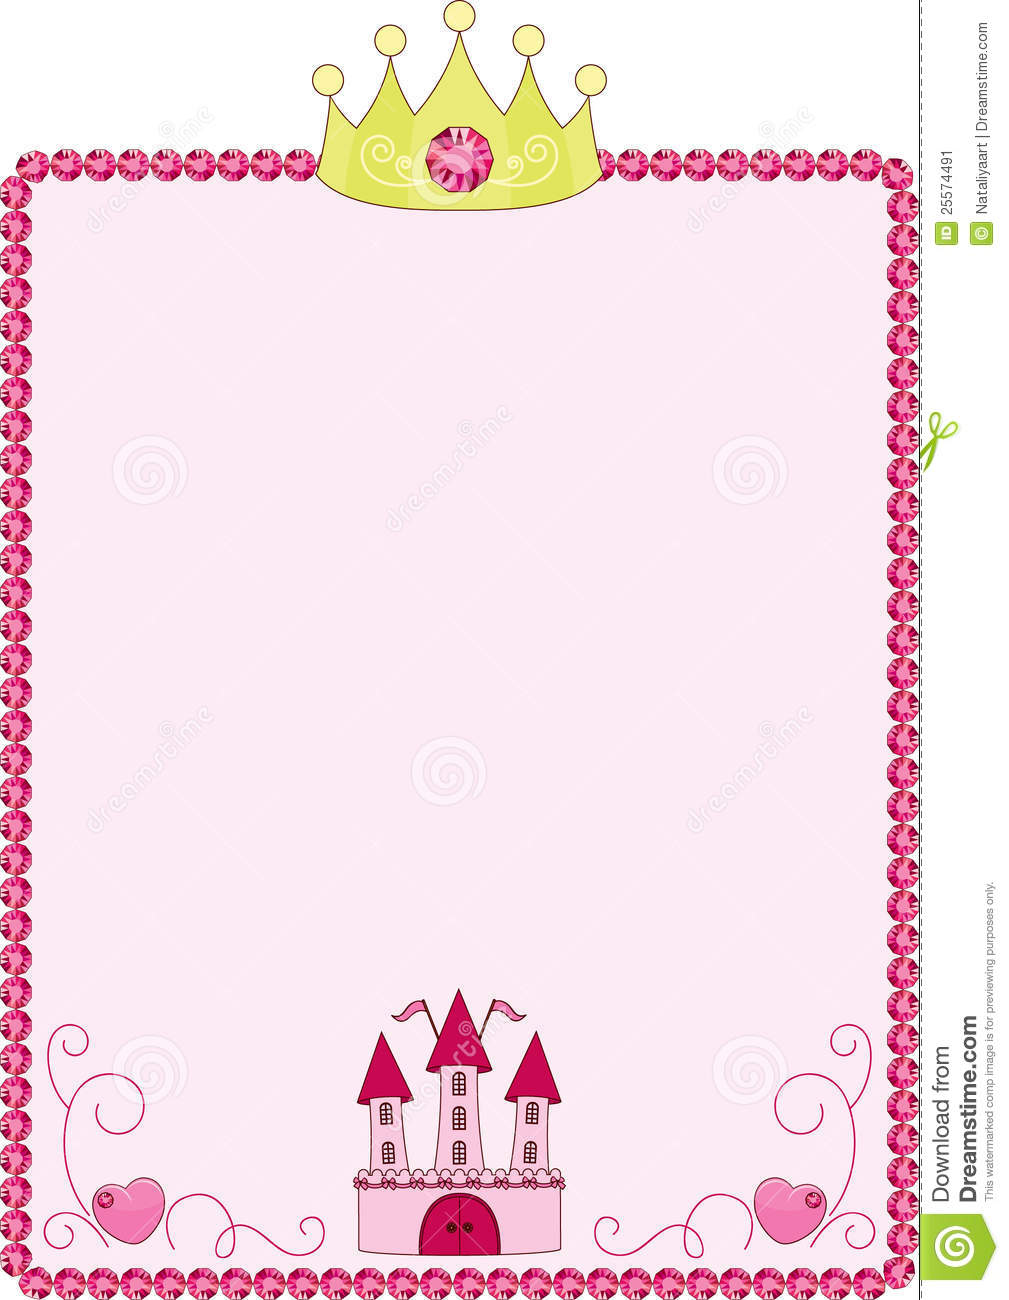 Boarder clipart princess, Boarder princess Transparent FREE.